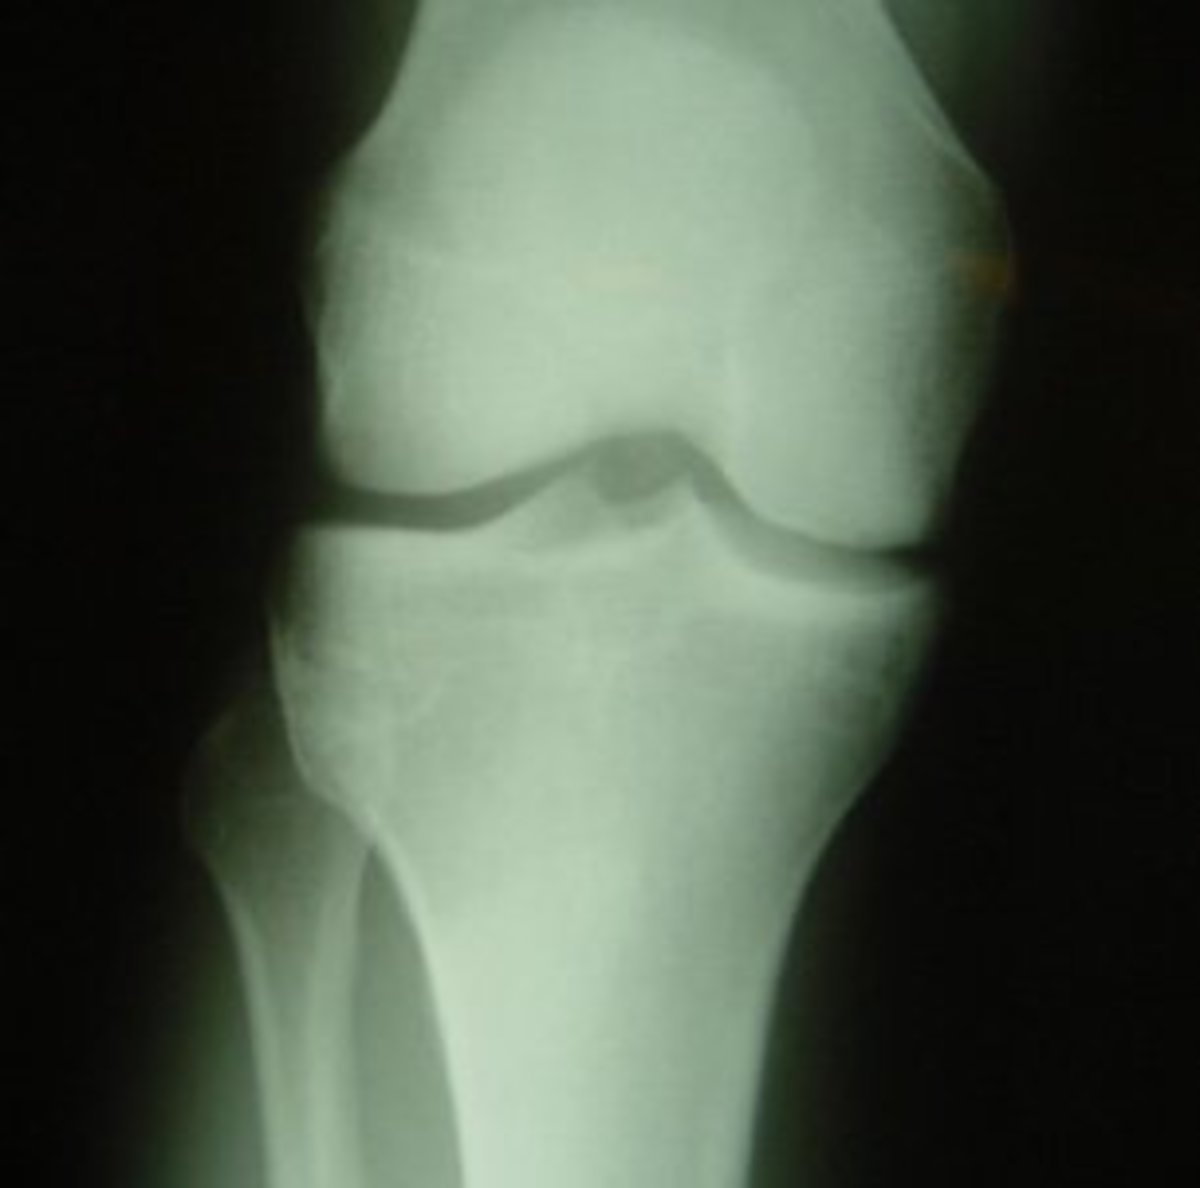 The AP knee X-ray view shows the knee from directly in front.